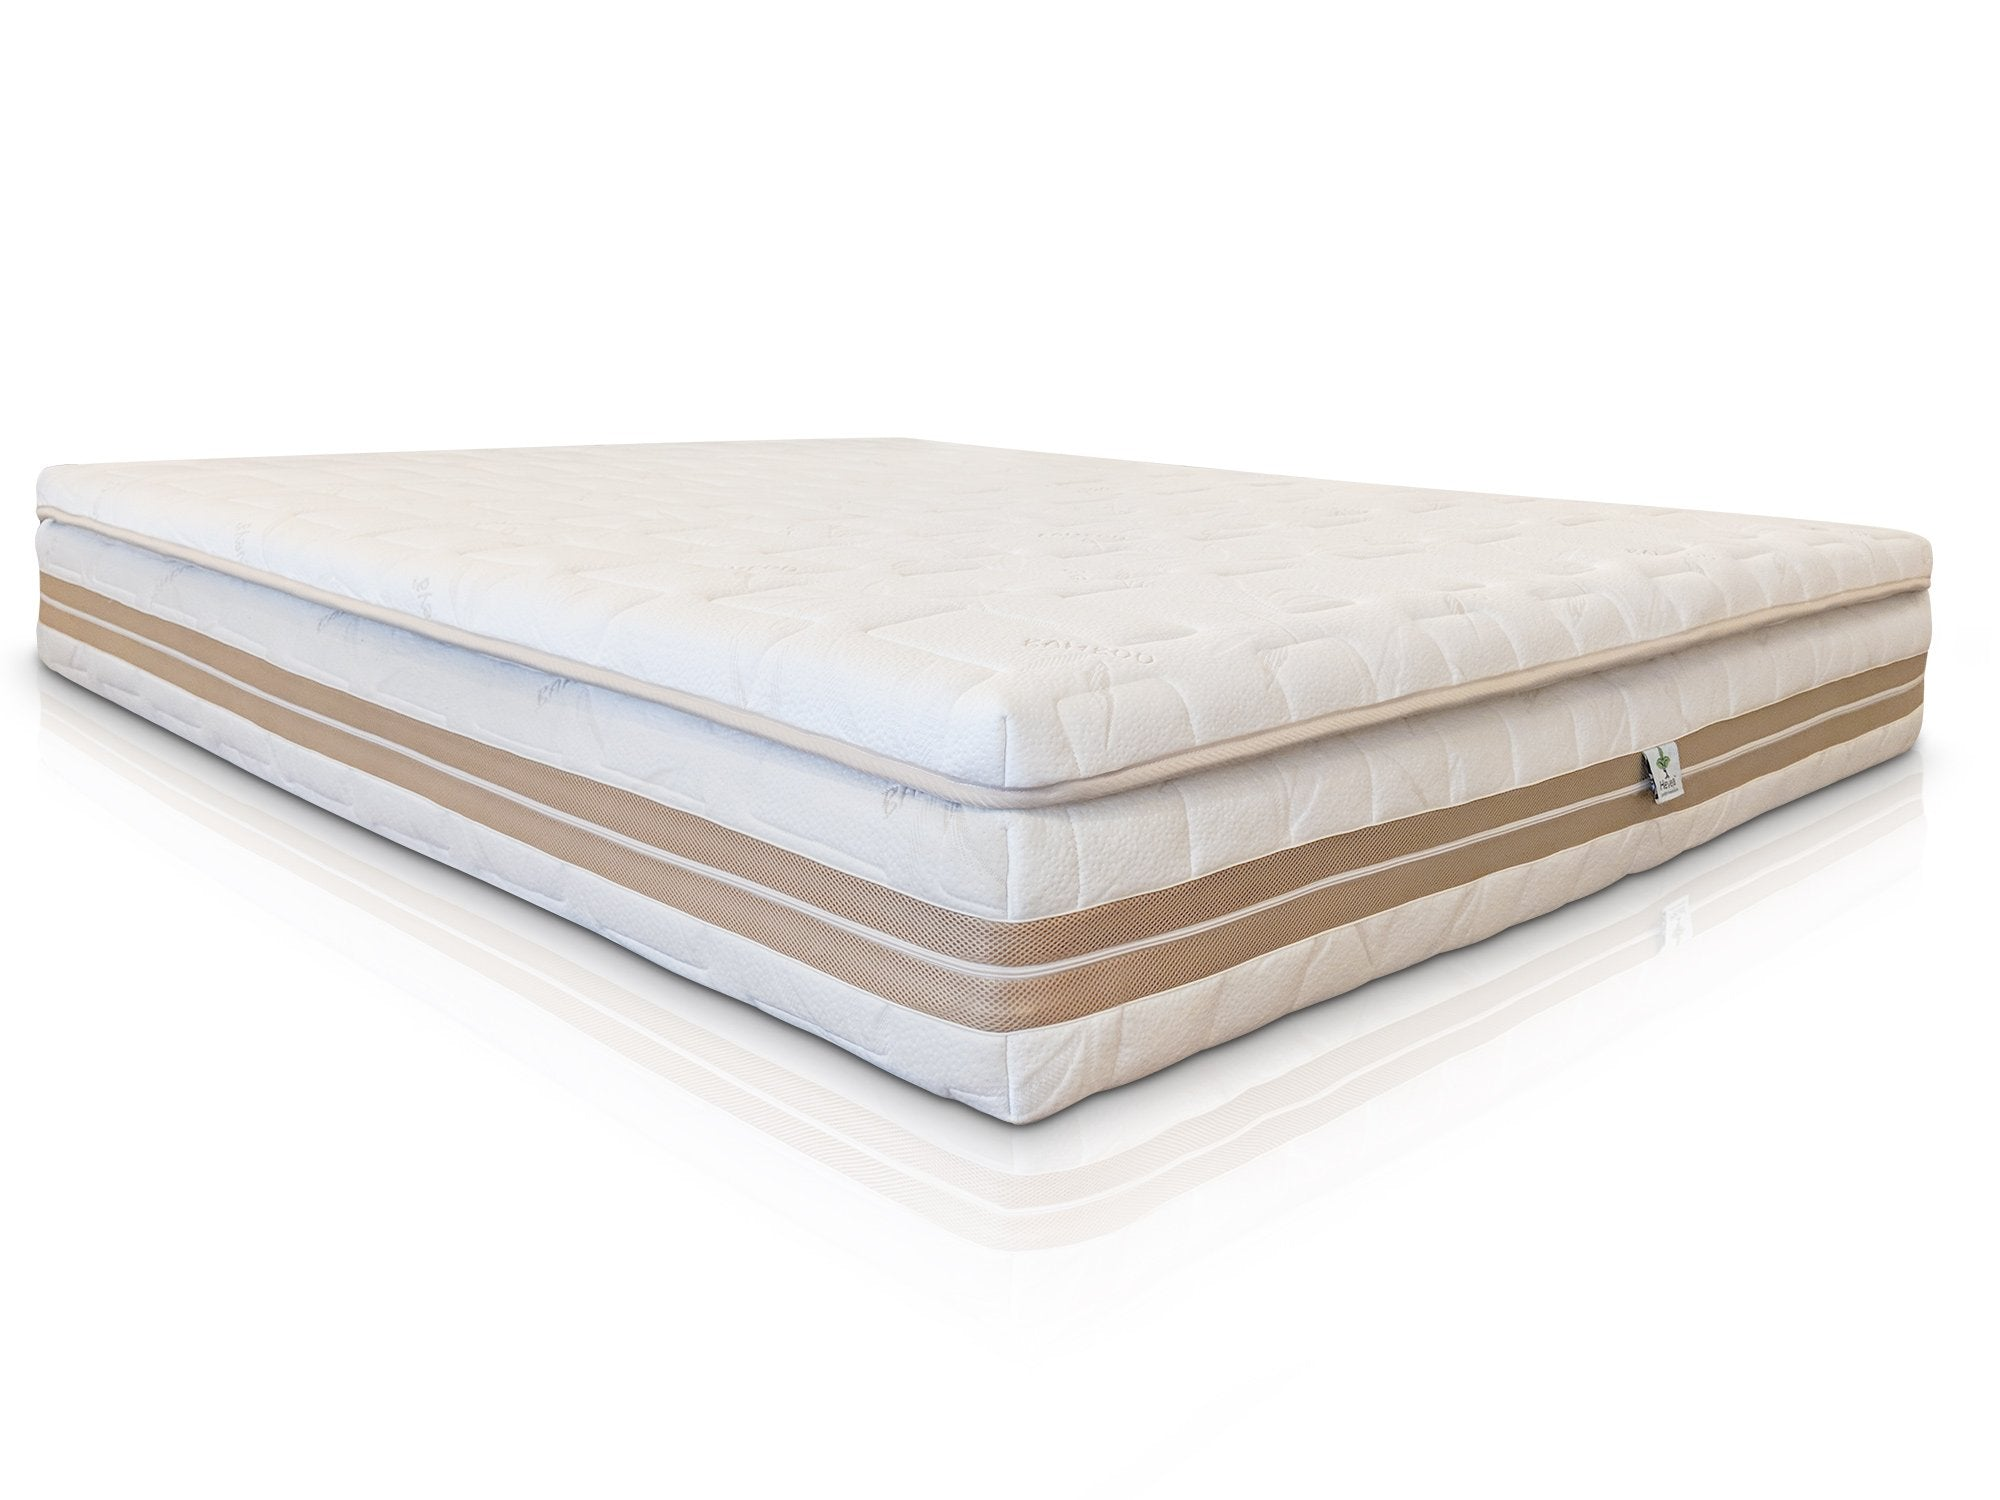 Heveya natural organic latex mattress III